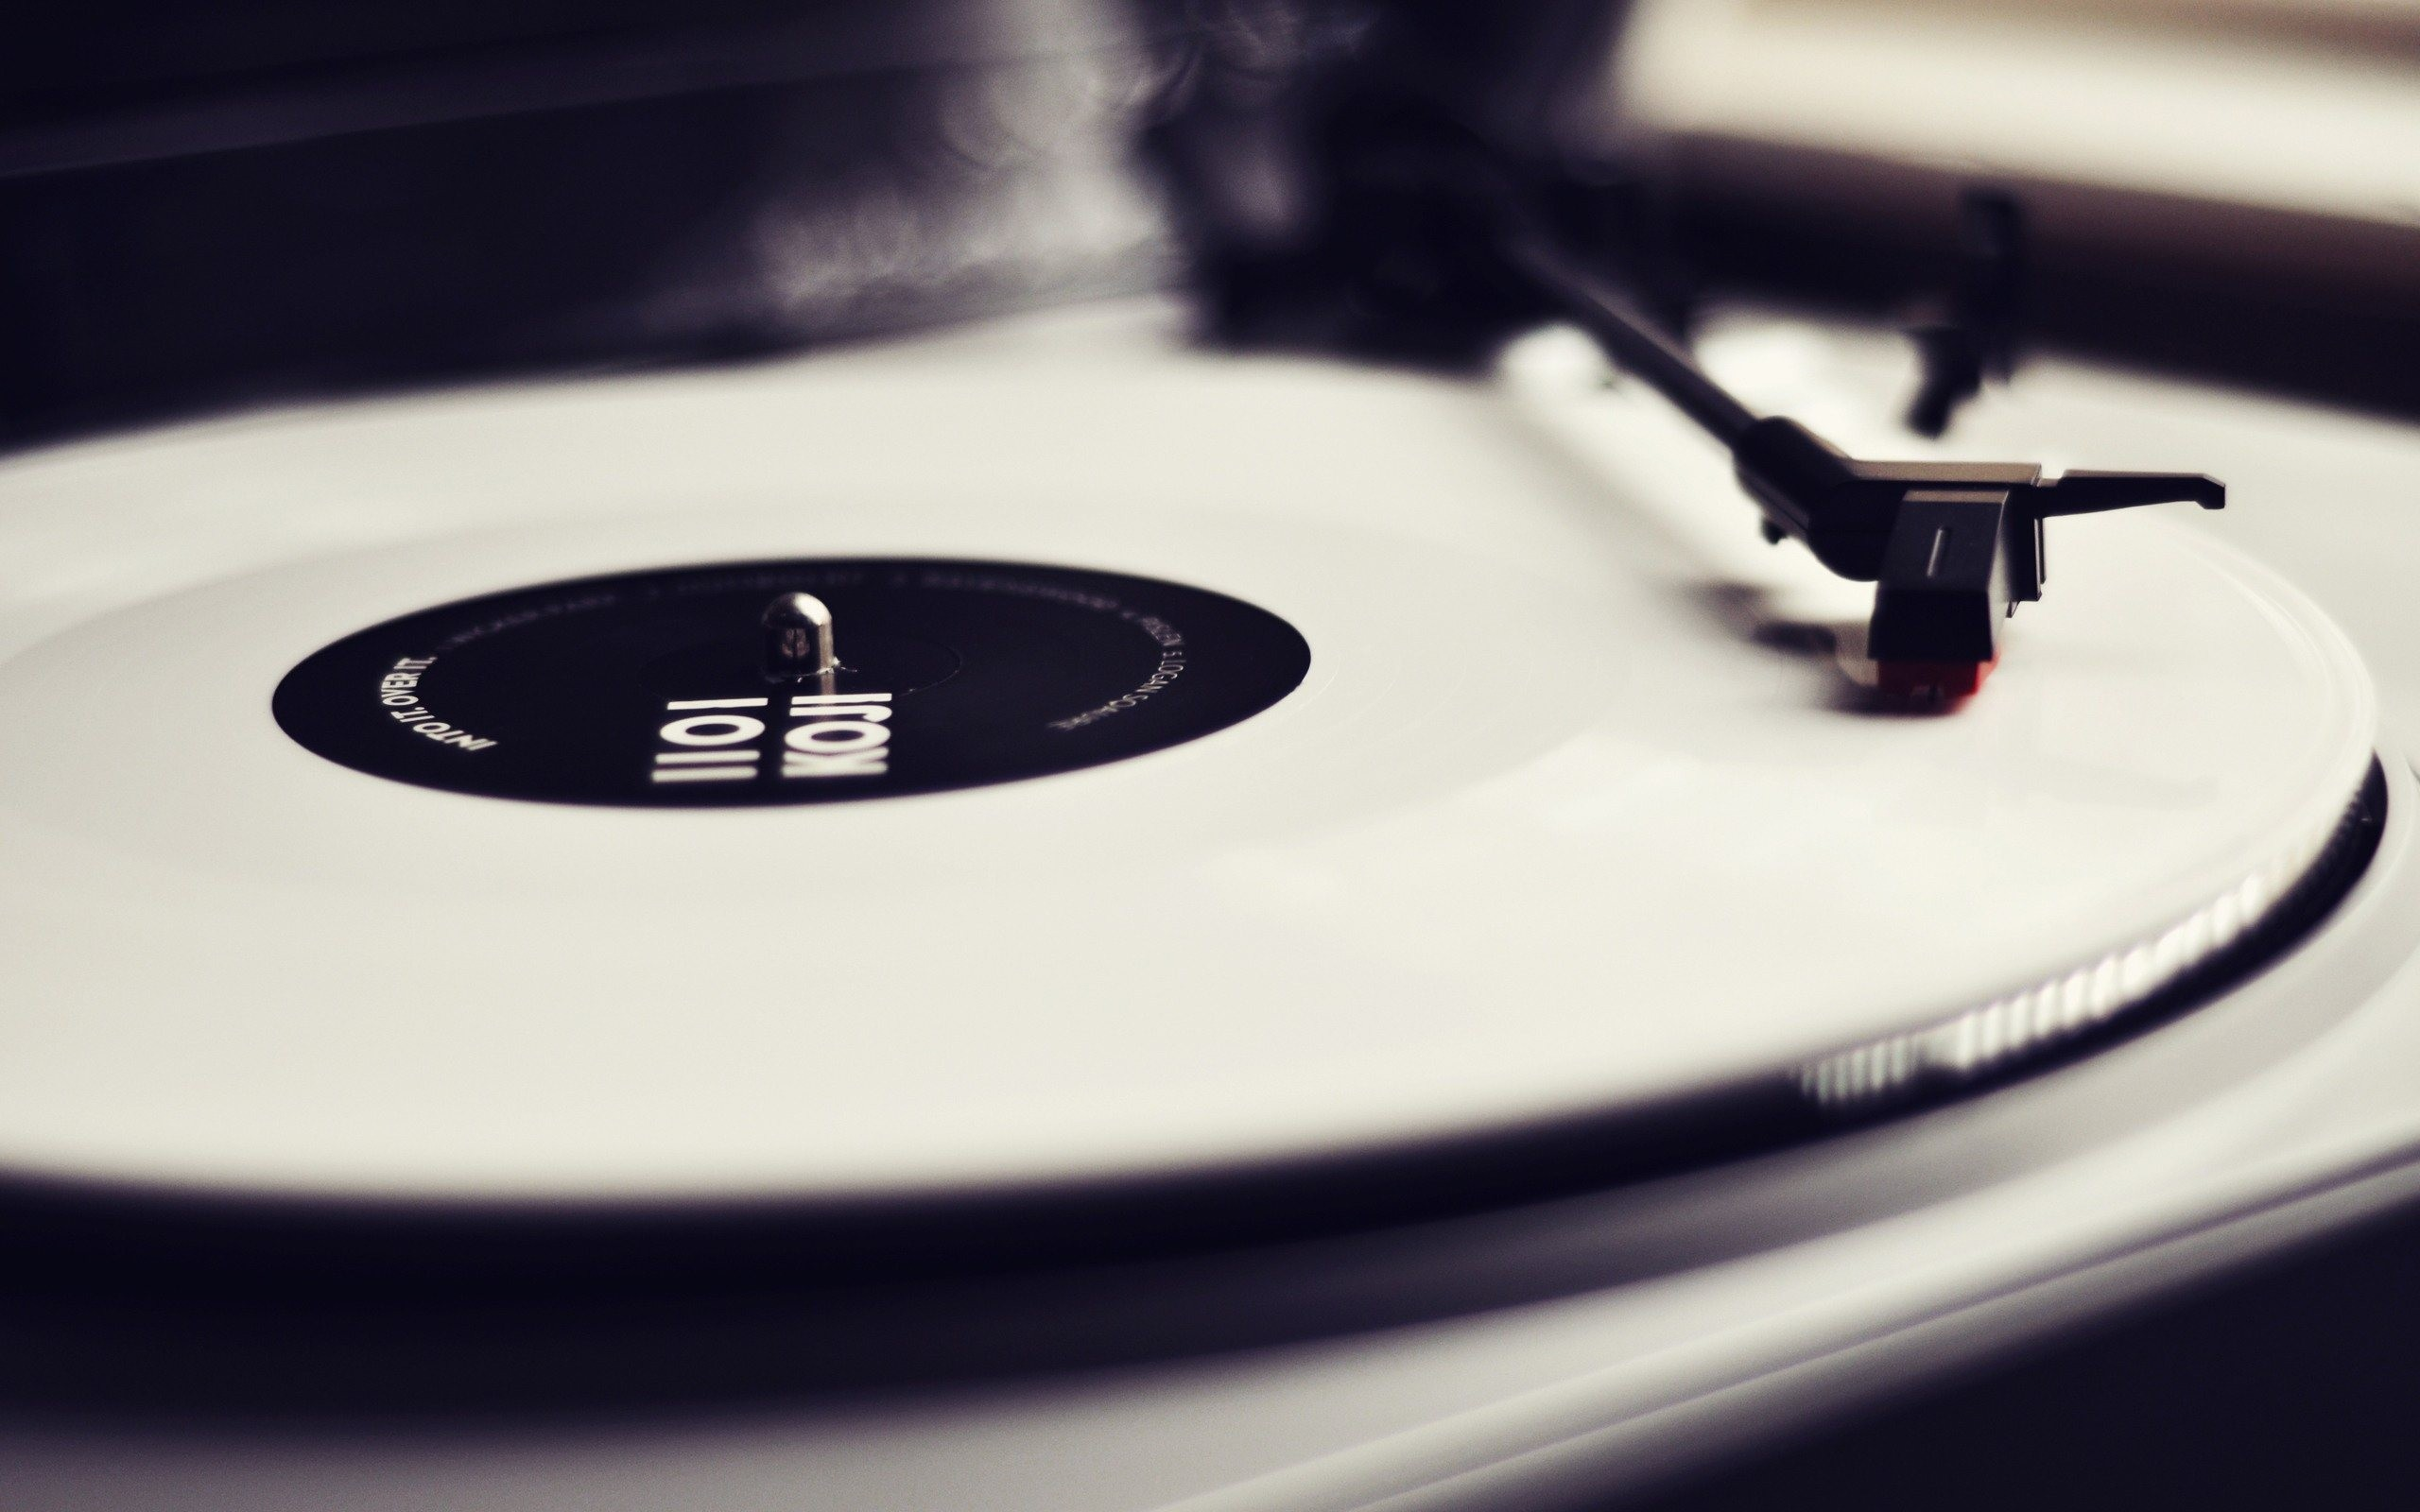 Turntable Wallpaper 2560x1600 px